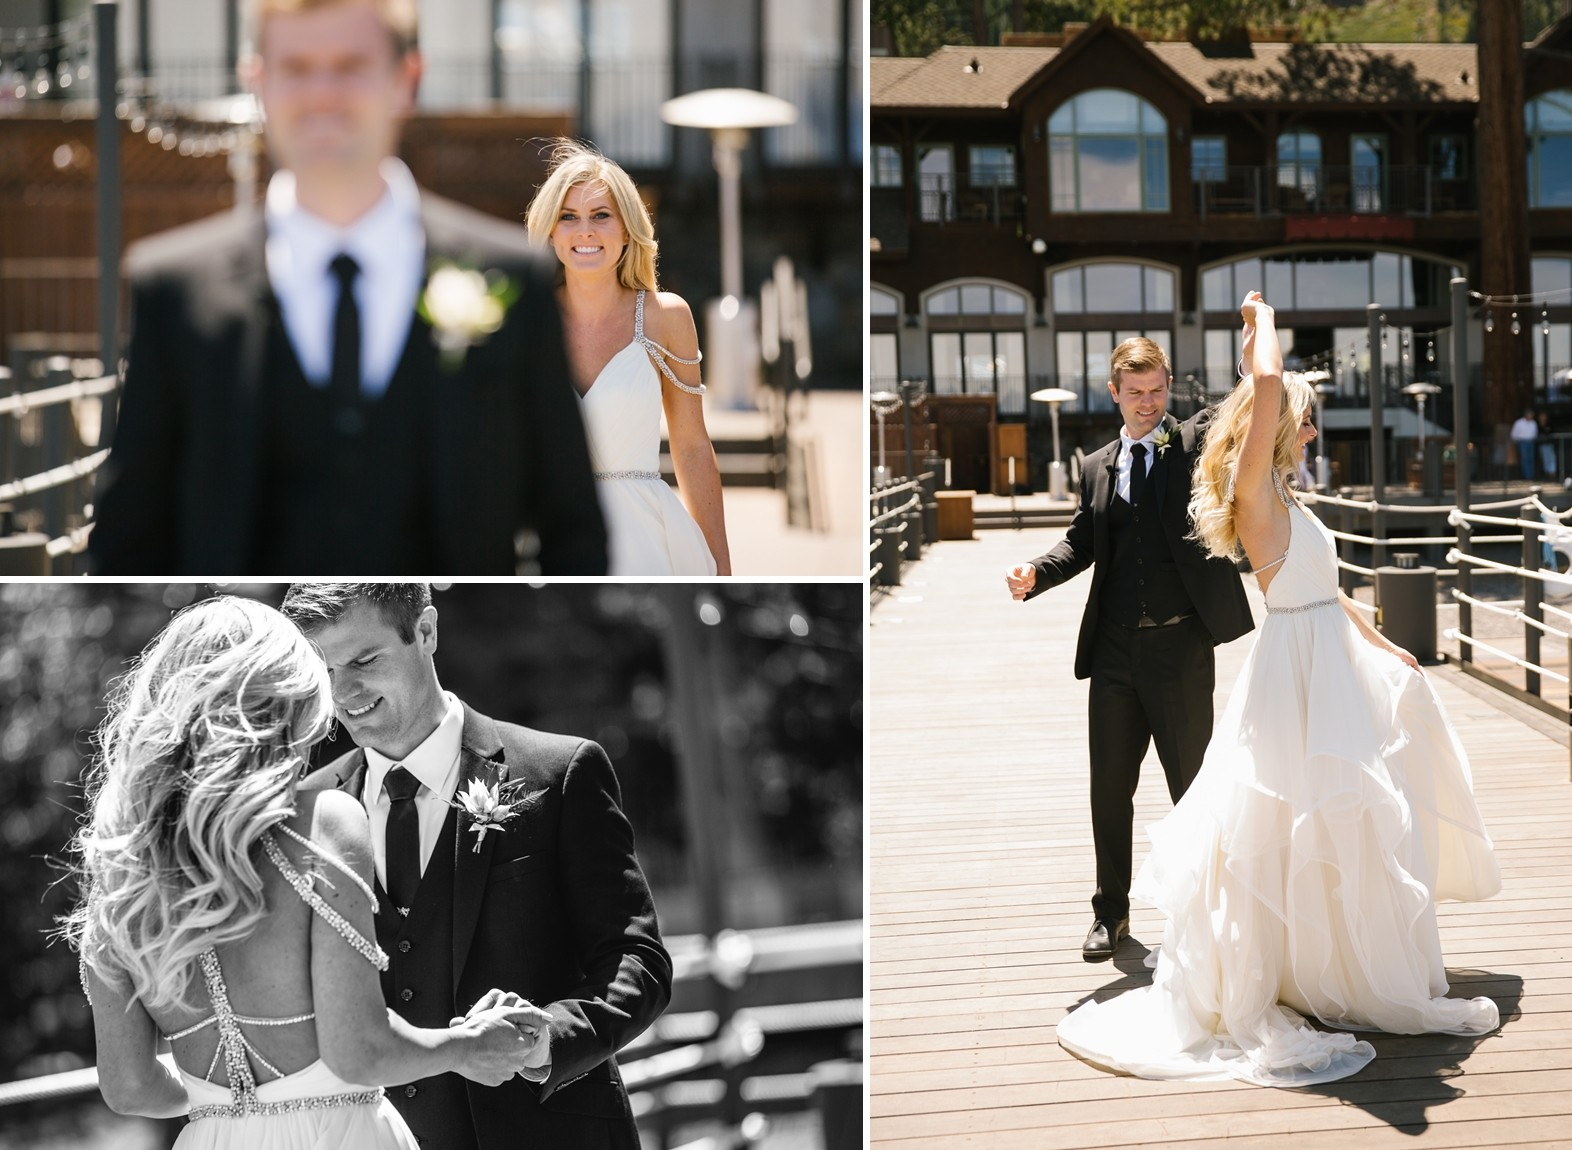 Lake Tahoe wedding The First Look